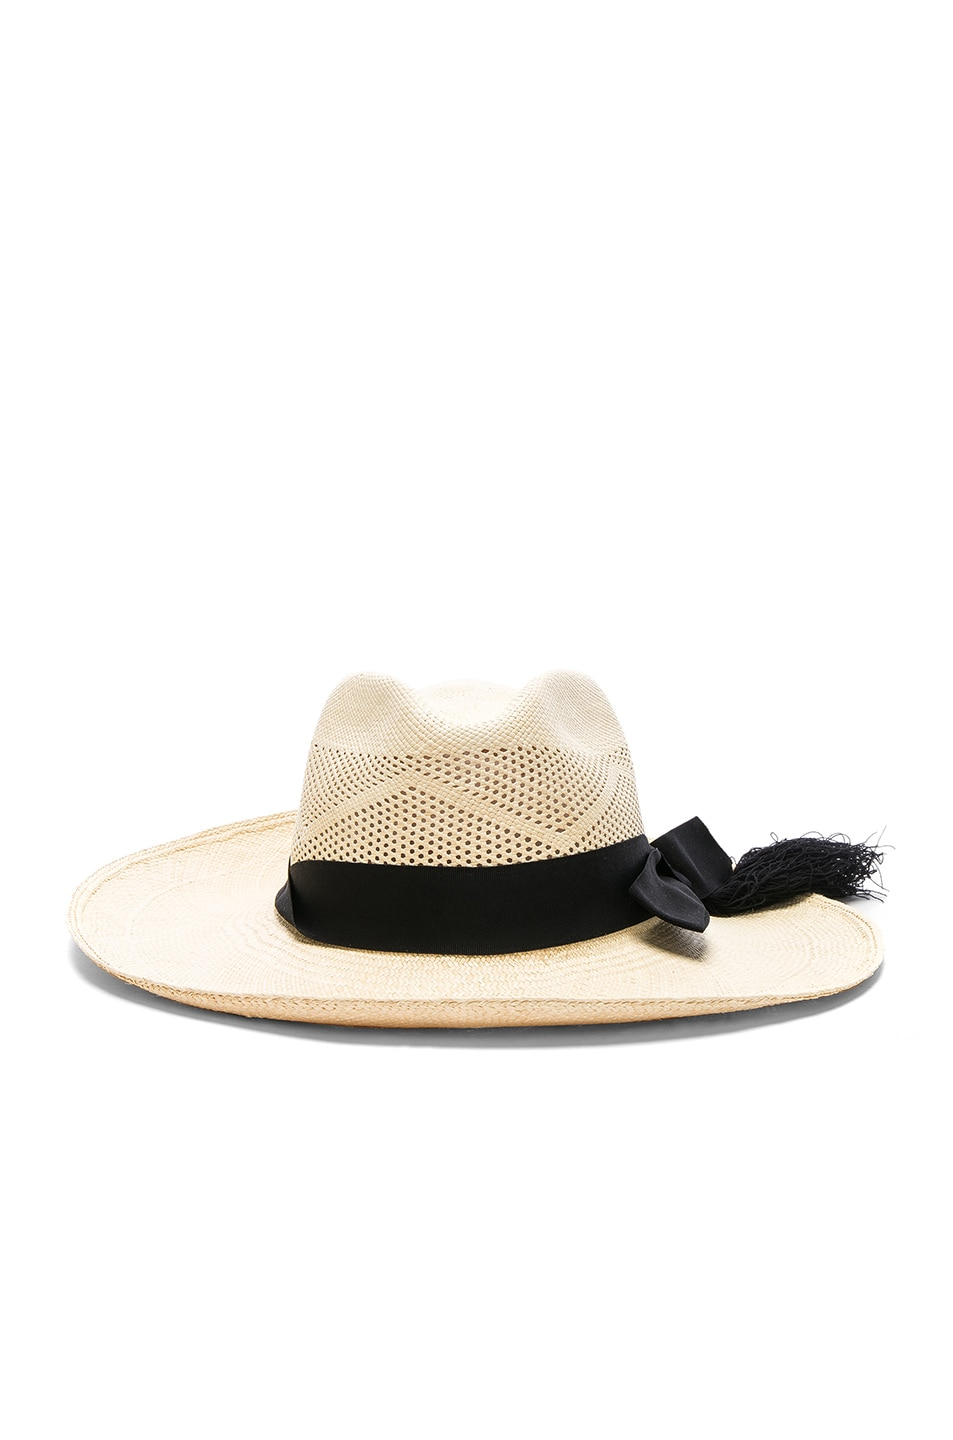 Image 1 of SENSI STUDIO Panama Hat Long Brim Calado Hat in Natural & Black